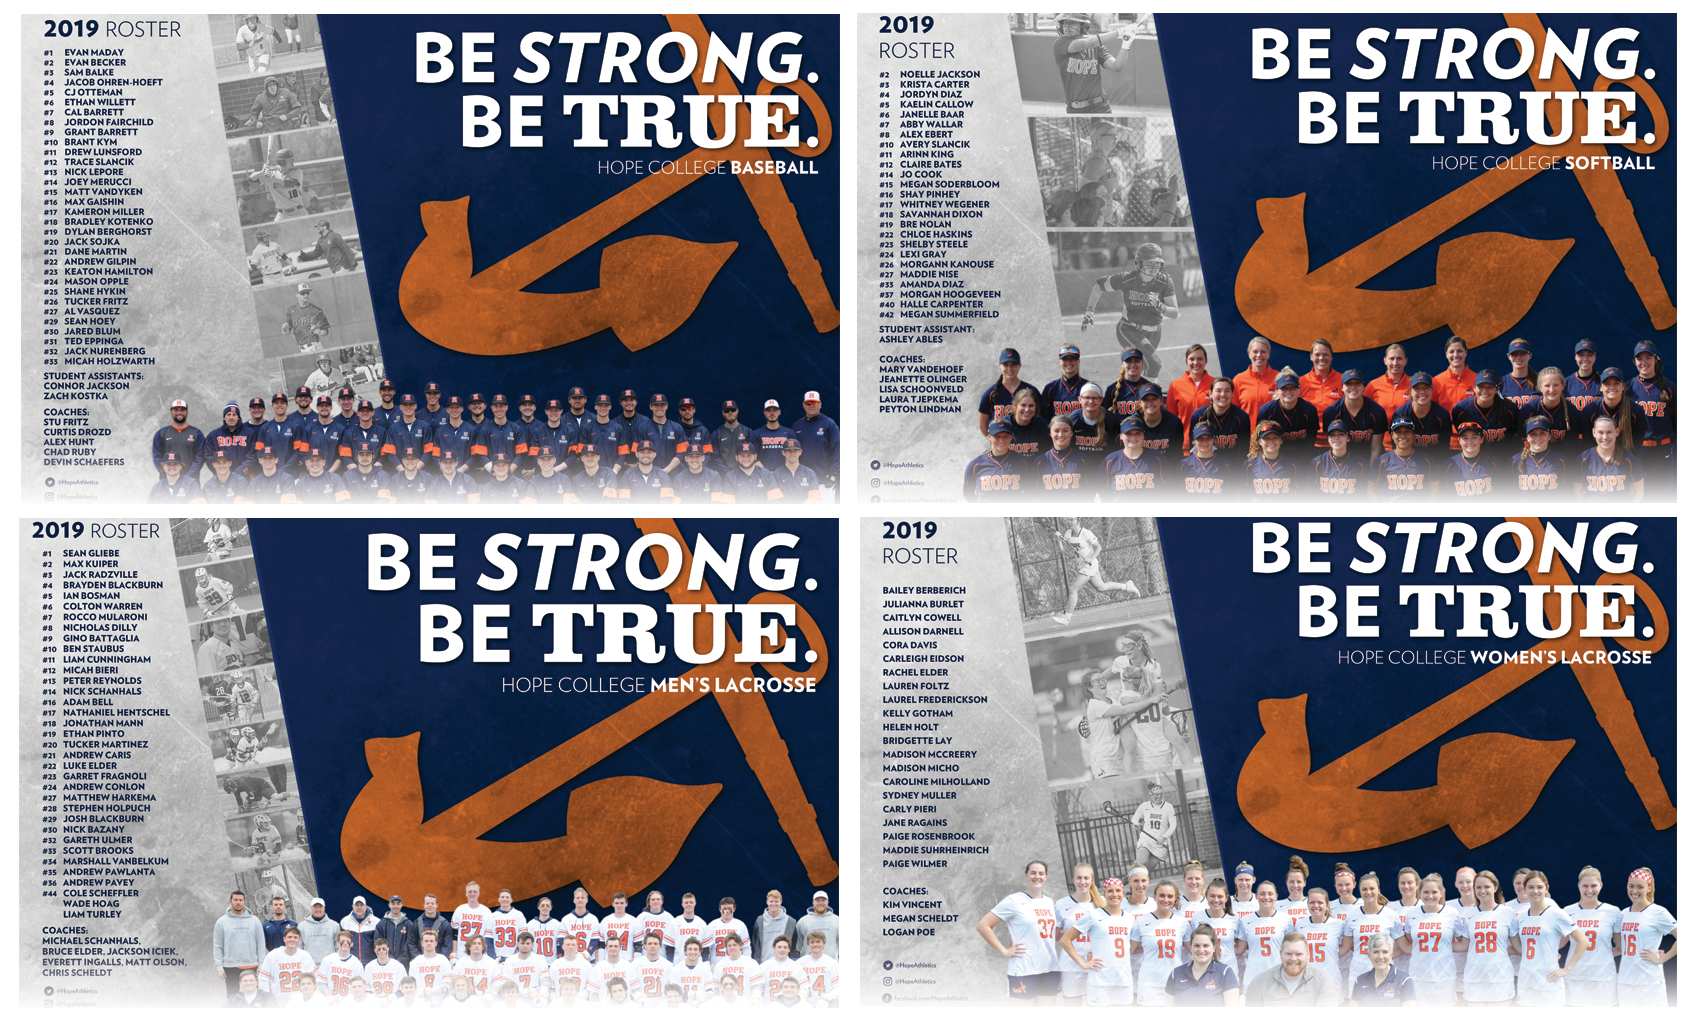 Spring team posters with orange anchors for baseball, men's lacrosse, women's lacrosse and softball